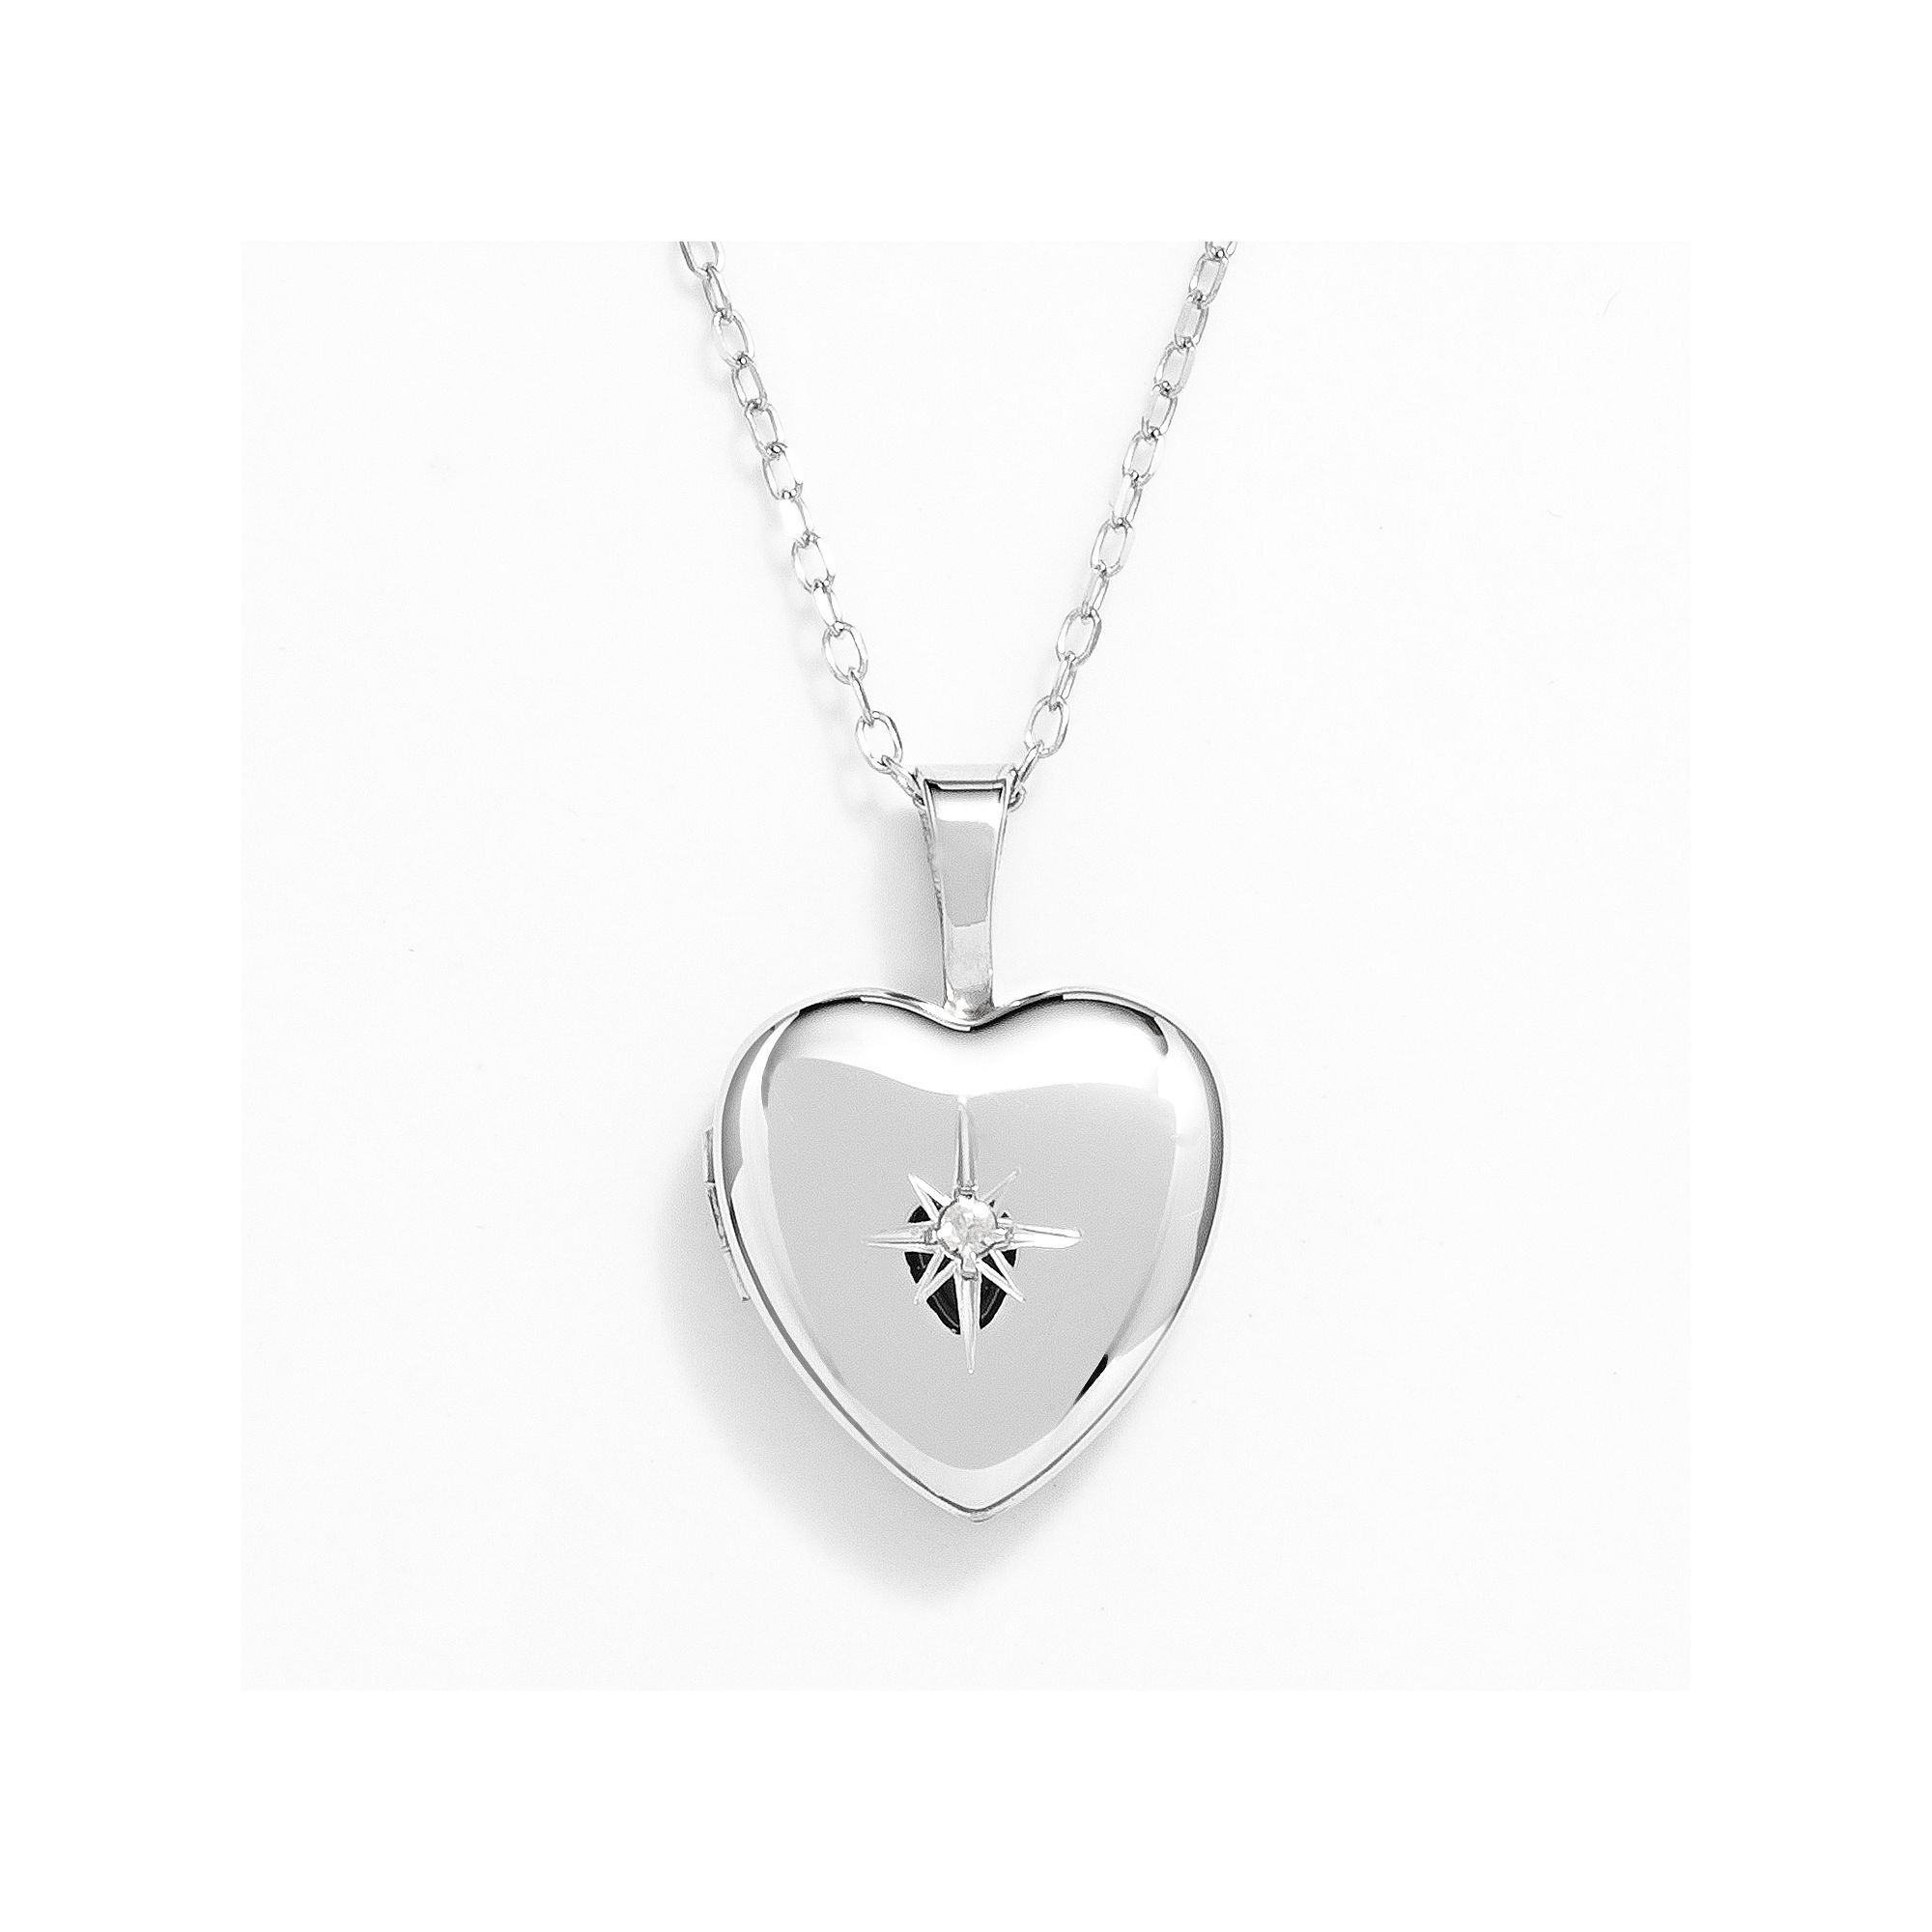 heartmeenaaeb in american women chain gifts lockets plated valentine and for locket gold diamond caymancode heart with girls pendant jewmeenaz meenaz ps